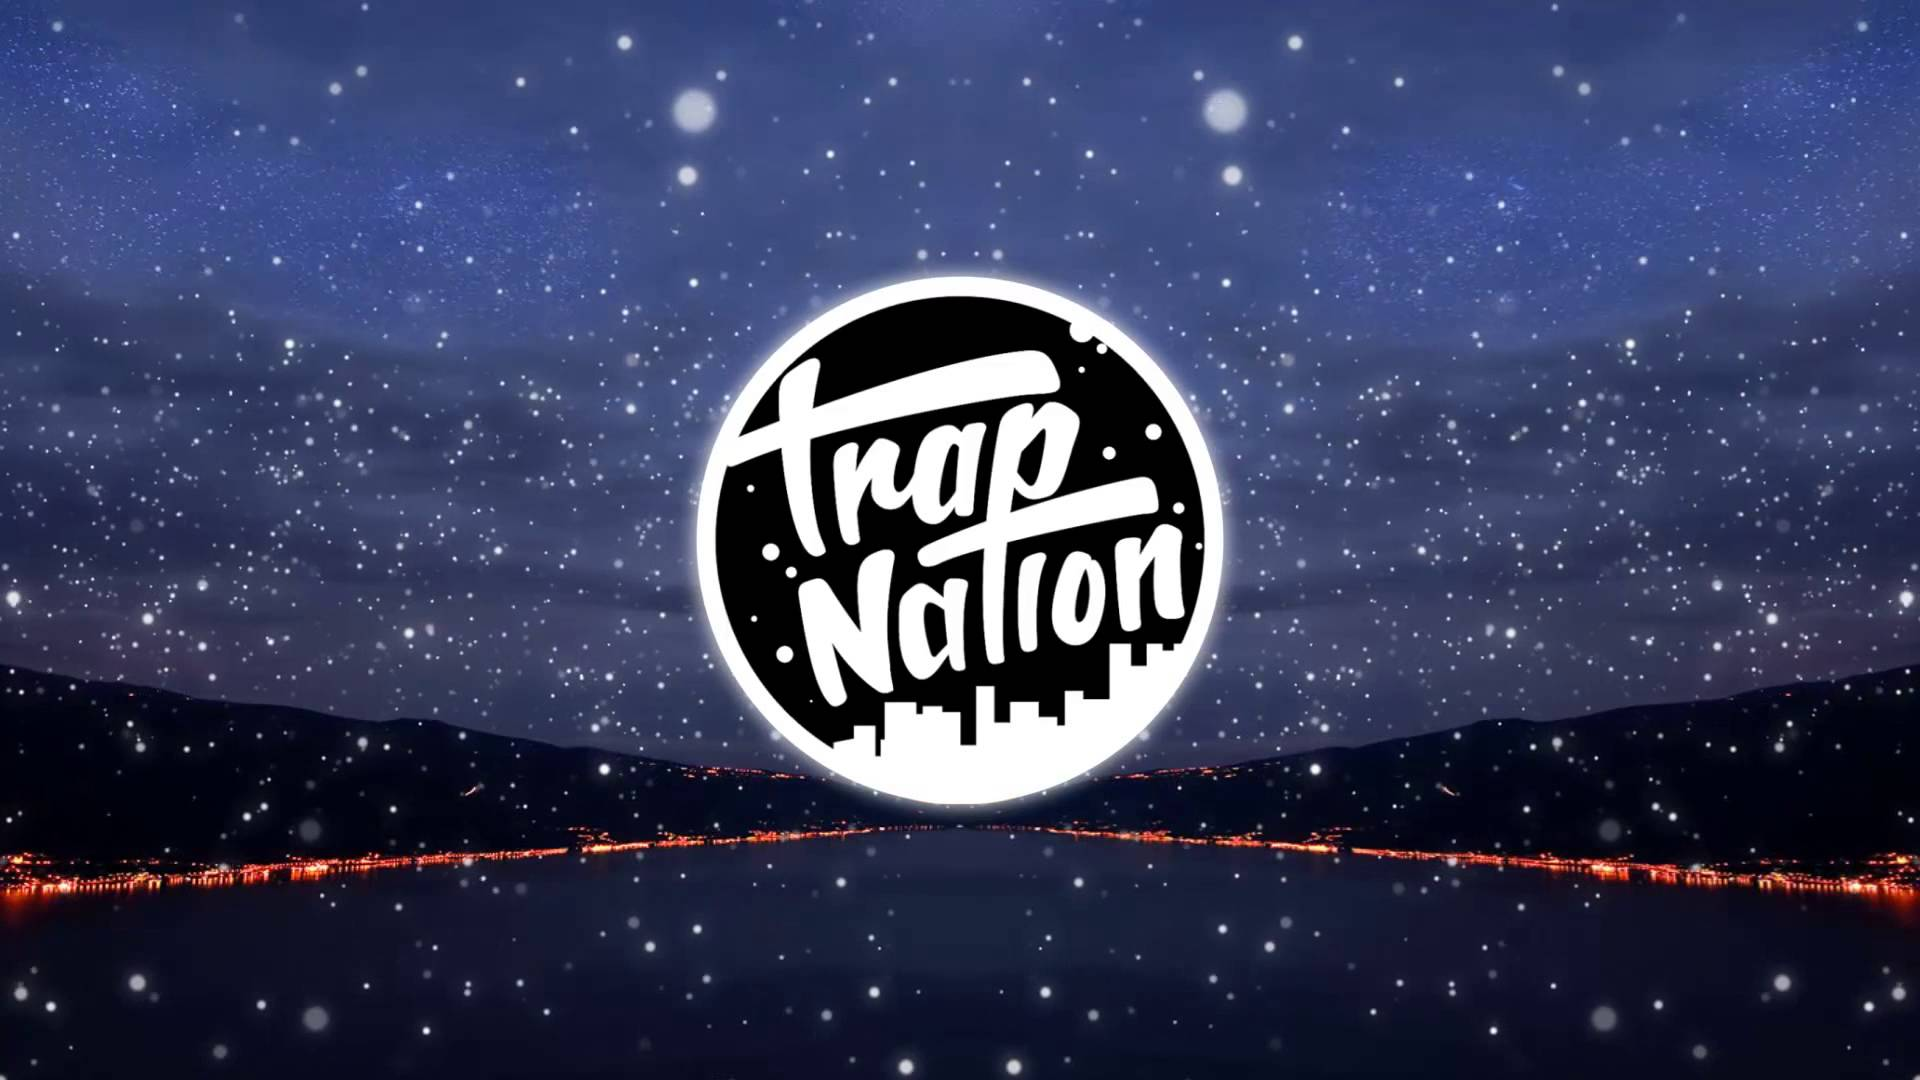 Trap nation wallpaper trap trapnation nation edm - See The Massive Lineups From Trap Nation Chill Nation At Sxsw